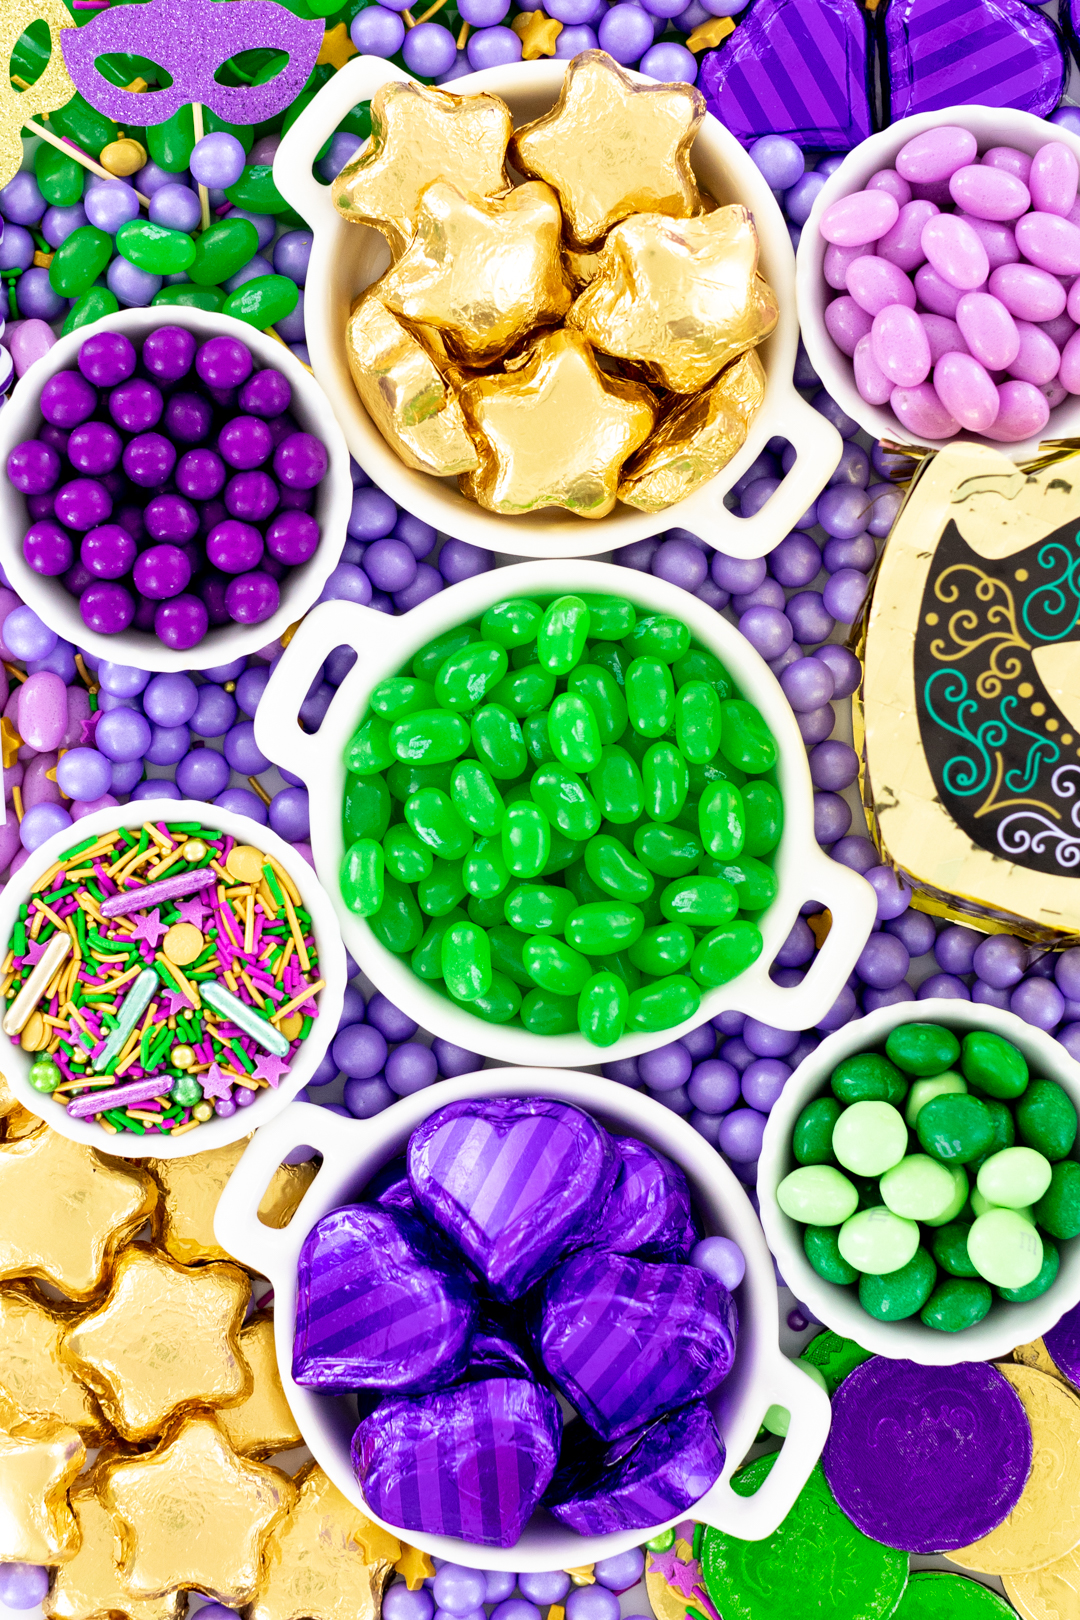 candy tray up close with gold foil star shaped chocolates, green jelly beans, mini M&Ms.